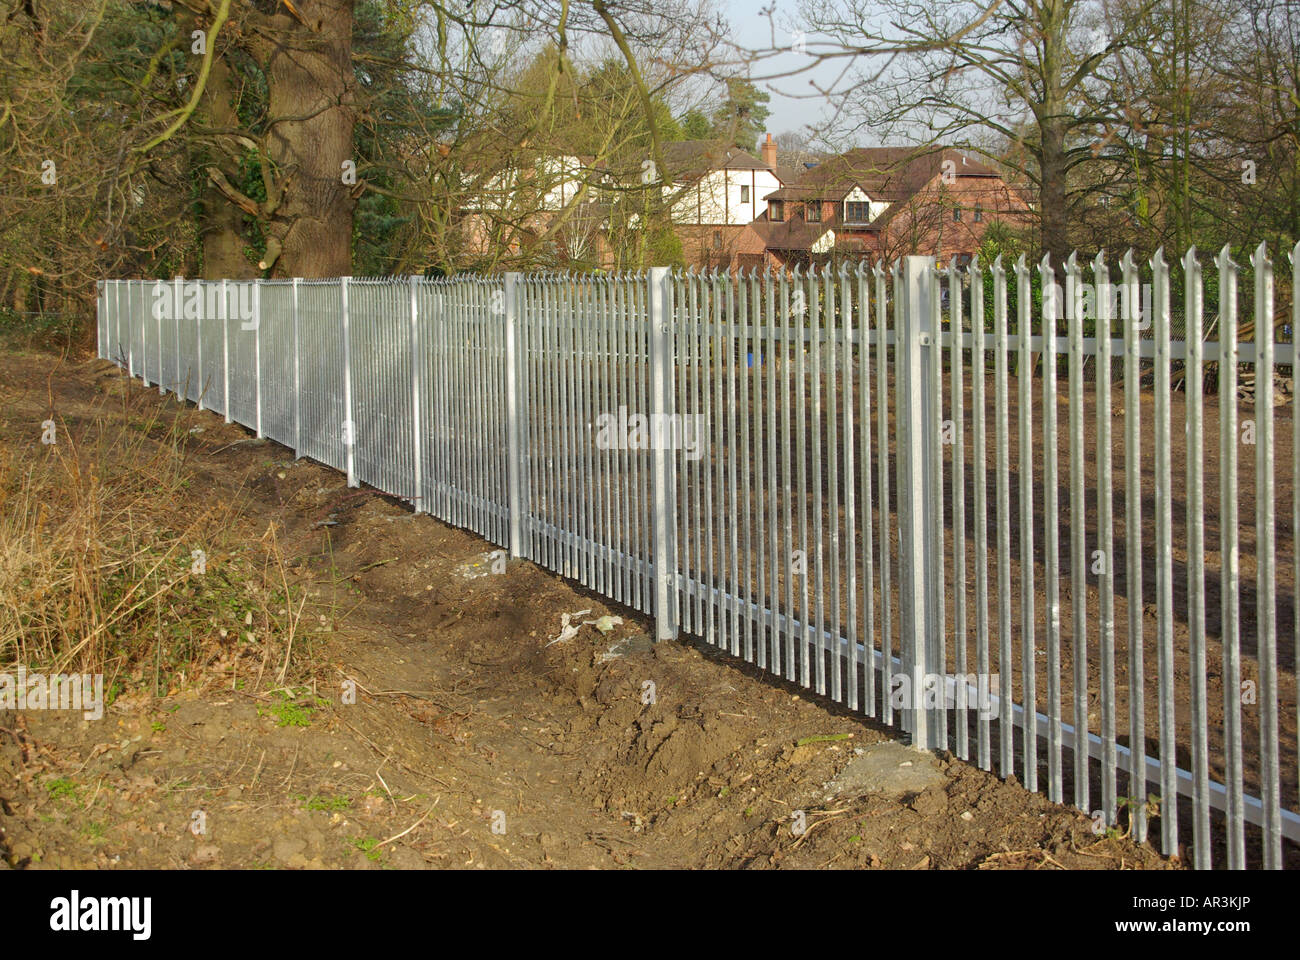 Stock Photo Galvanised Steel Palisade Fence Panels Around Paddock 15928077 on Fence On Property Line